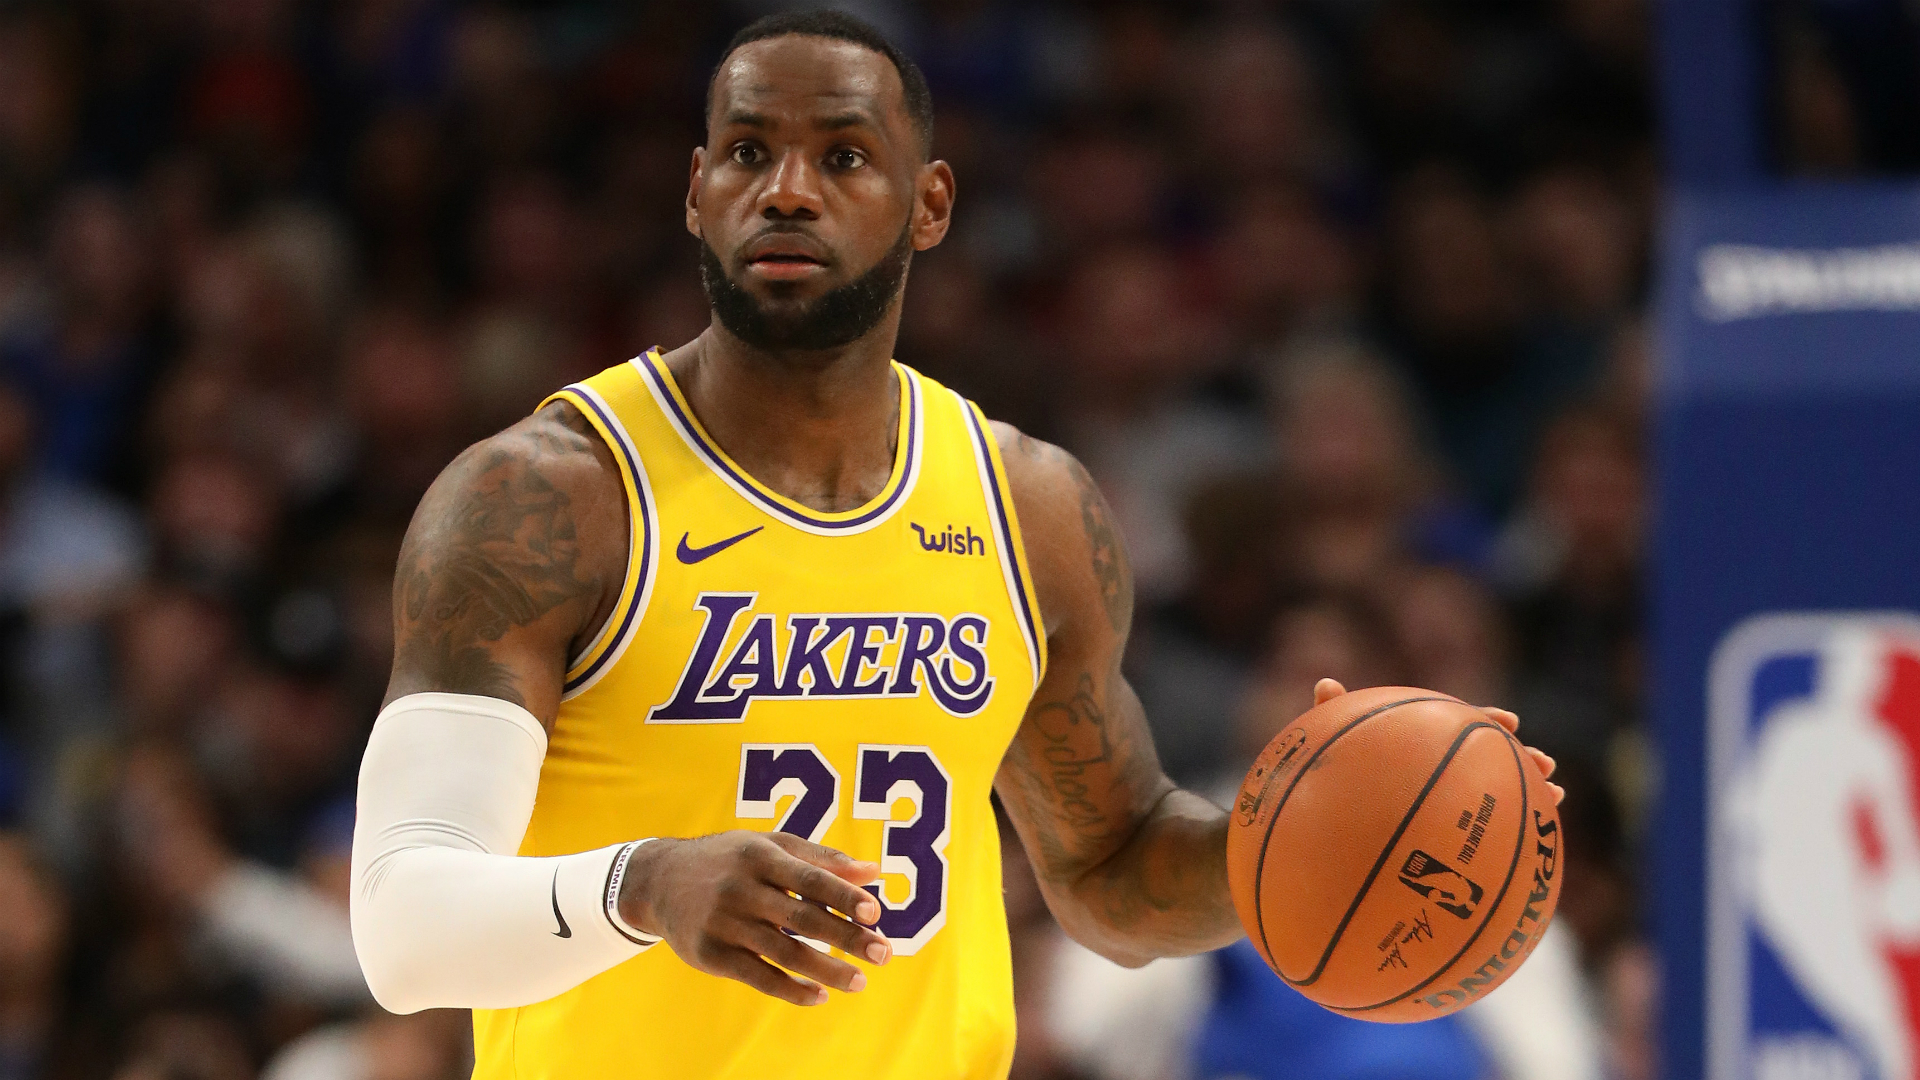 LeBron's third straight triple-double leads Lakers rally